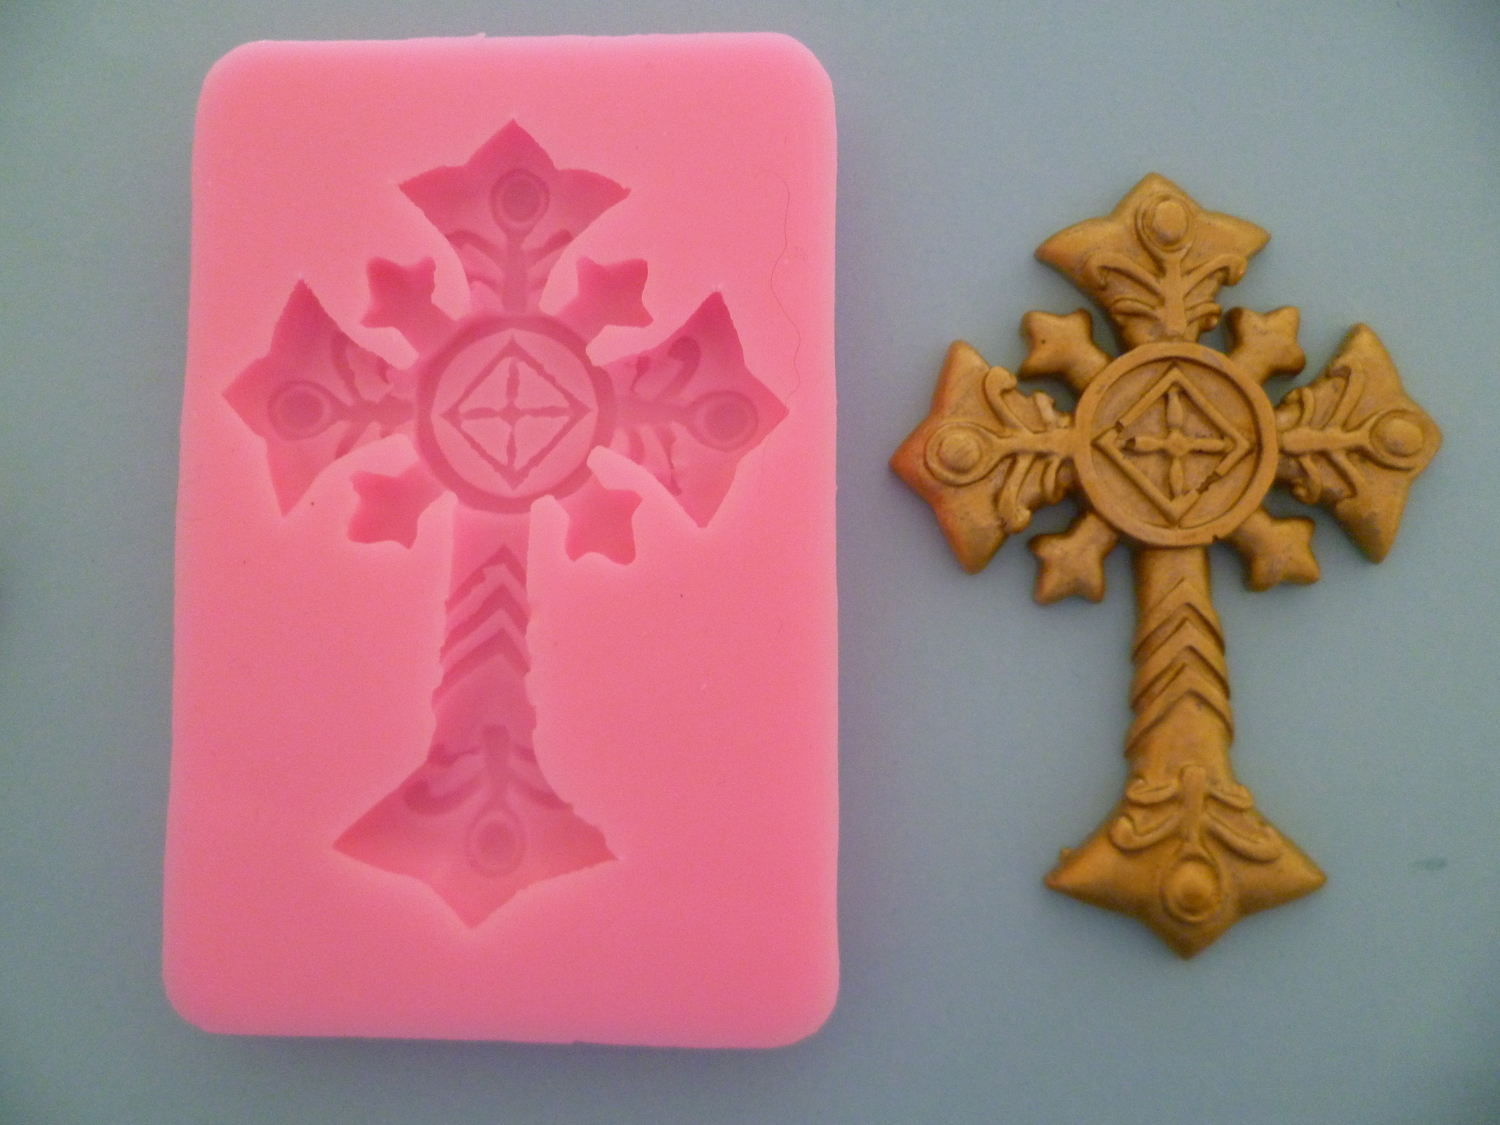 ORNATE CROSS SILICONE MOULD